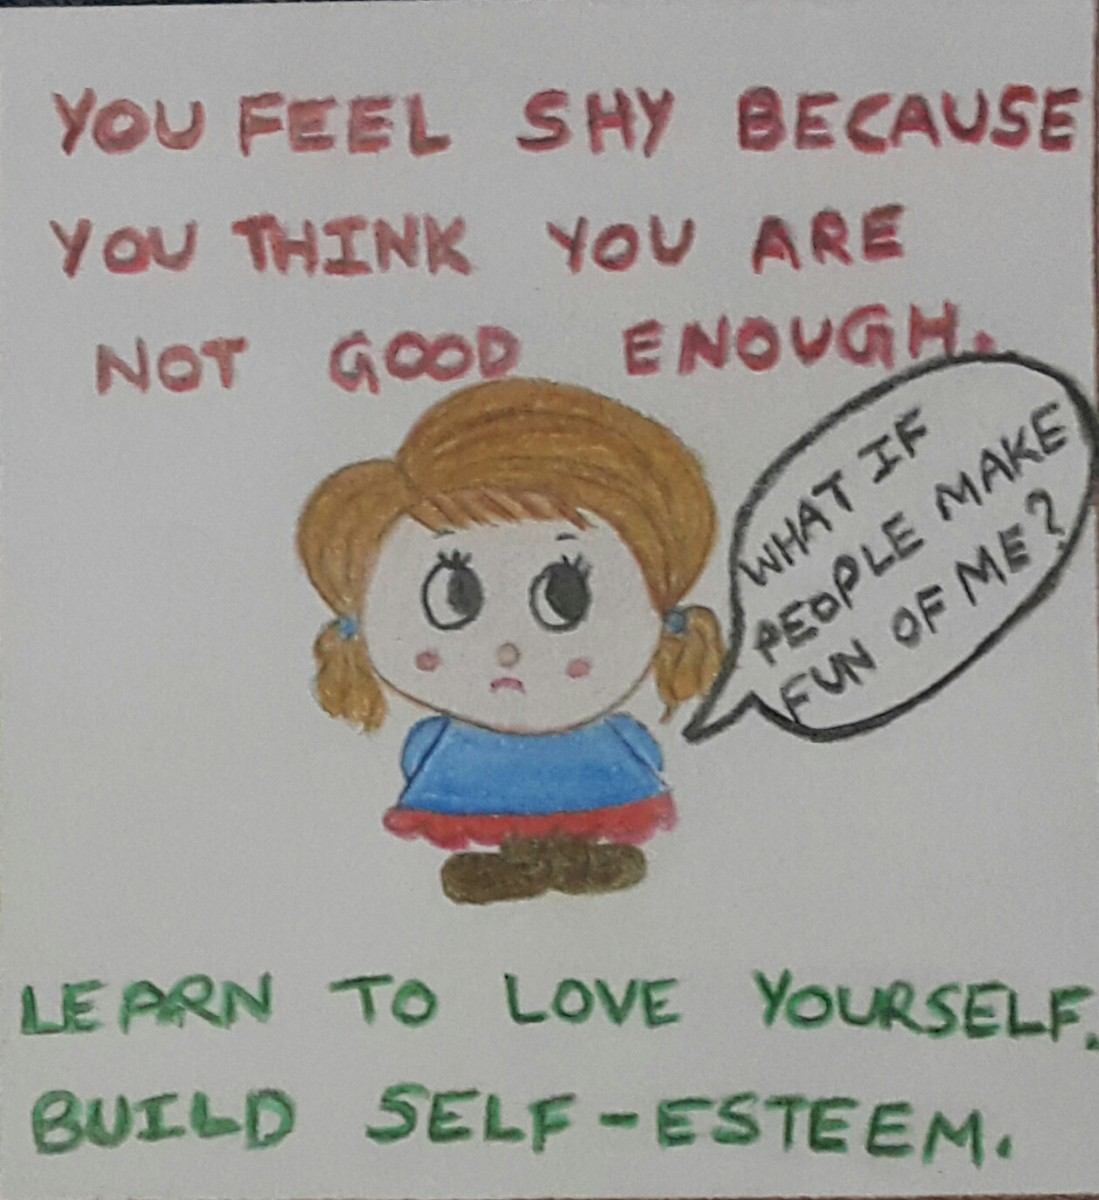 Shy people should learn to love themselves. They are so prone to self-criticism that they forget to appreciate themselves in the long run.